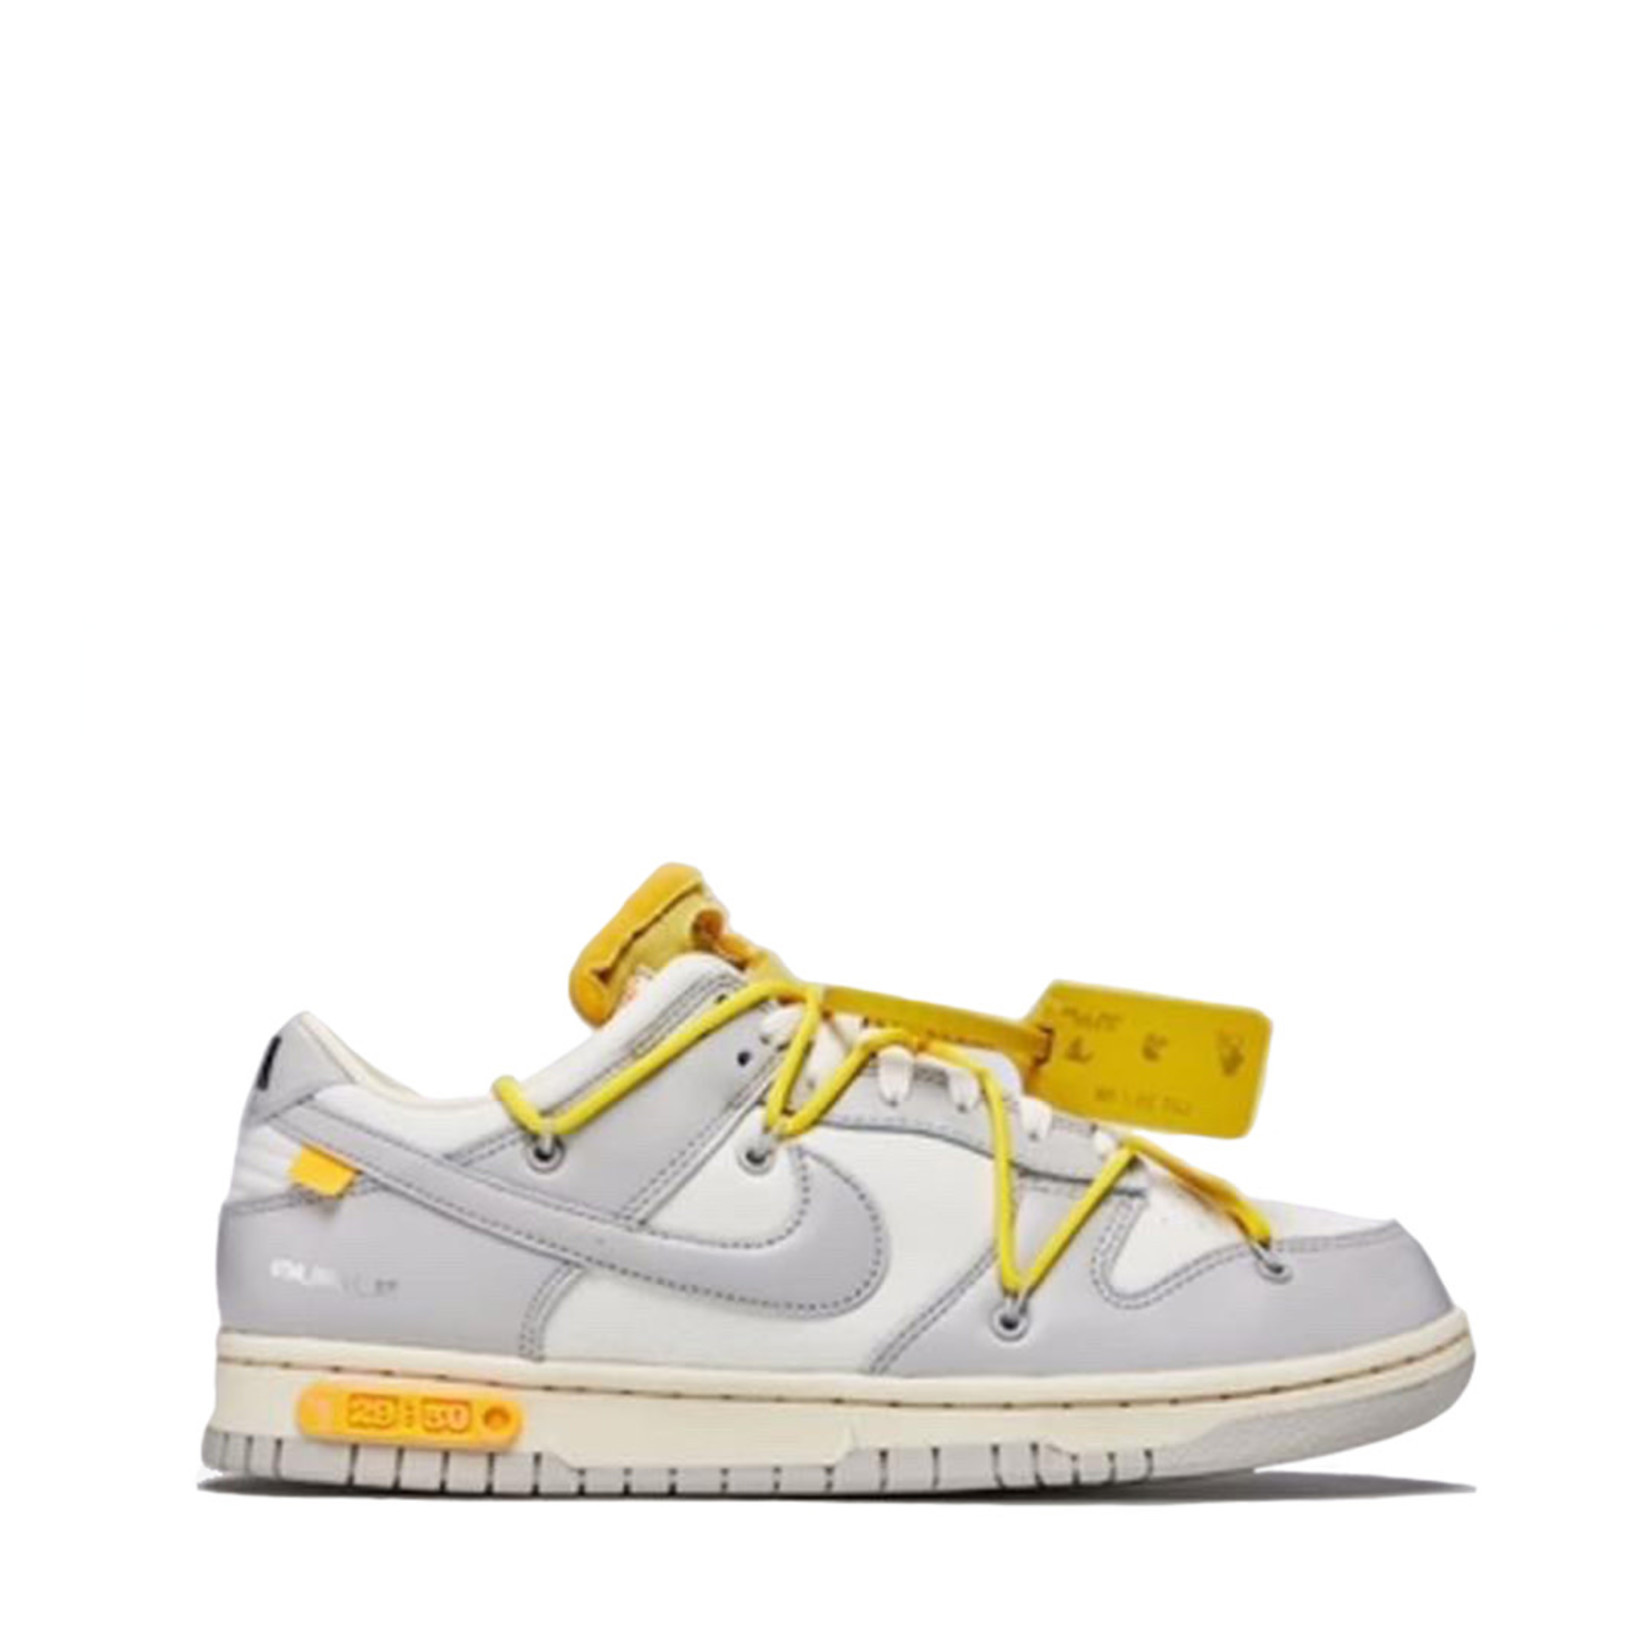 Off-White Nike Dunk Low Off-White Lot 29